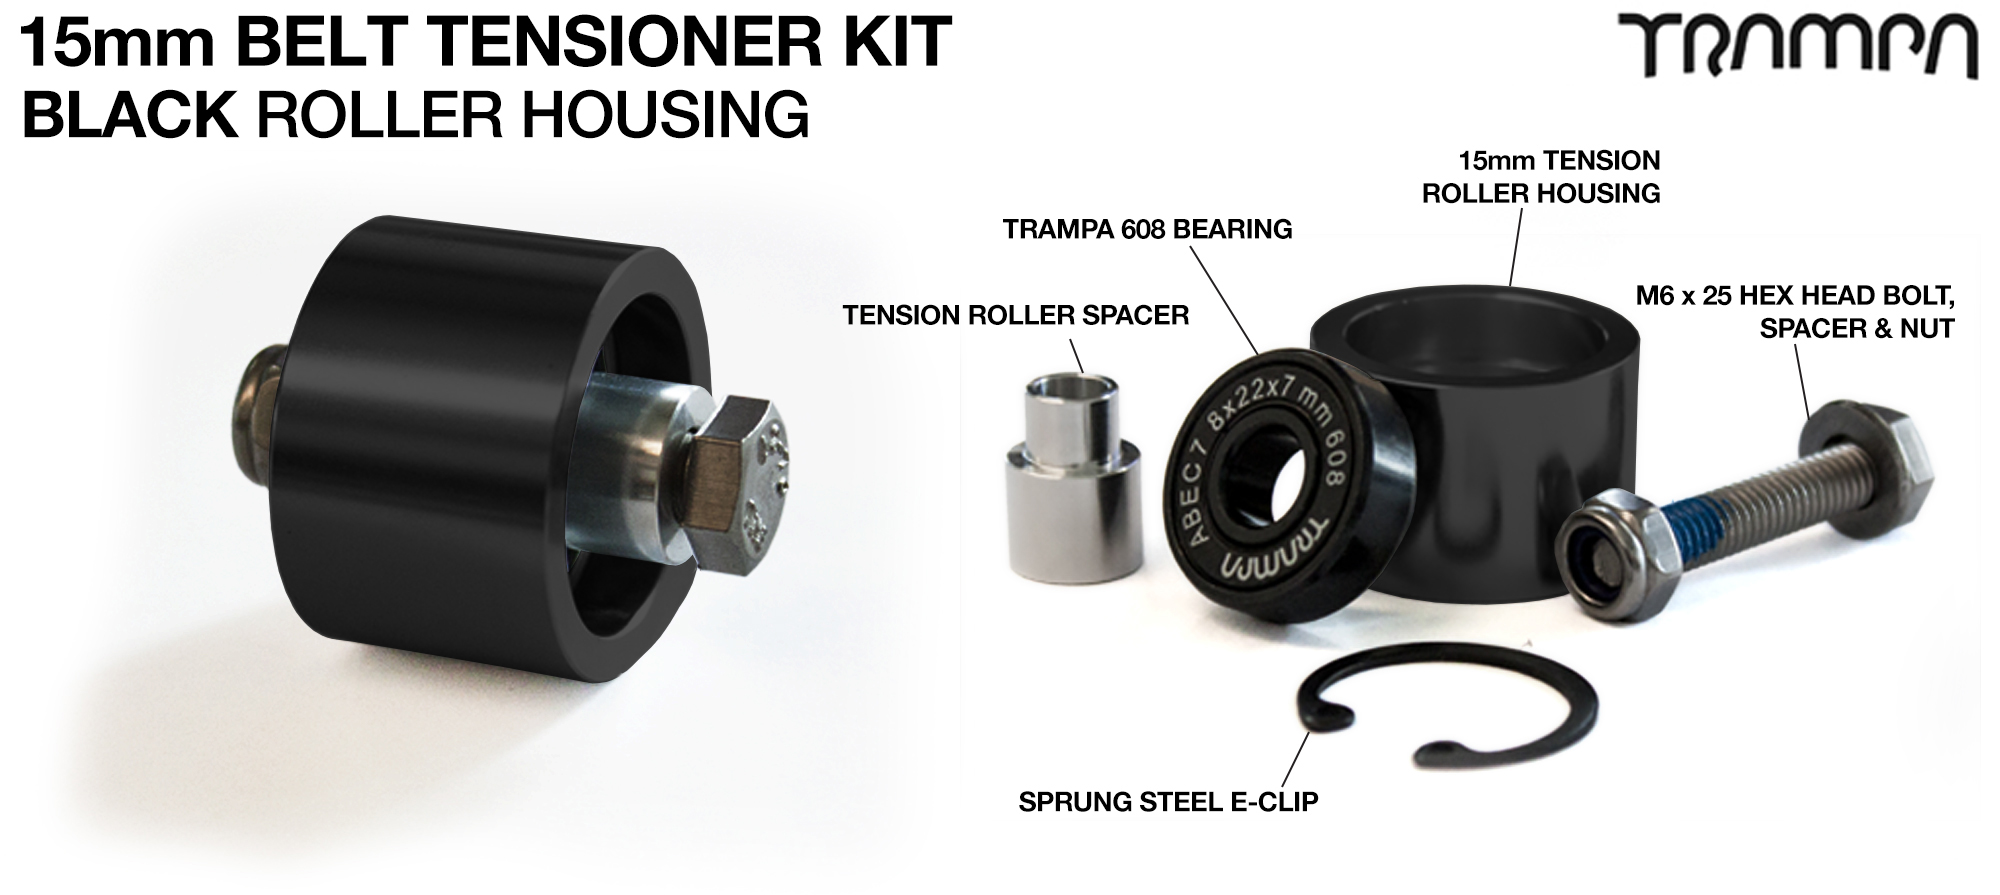 15mm Belt Tensioner - BLACK